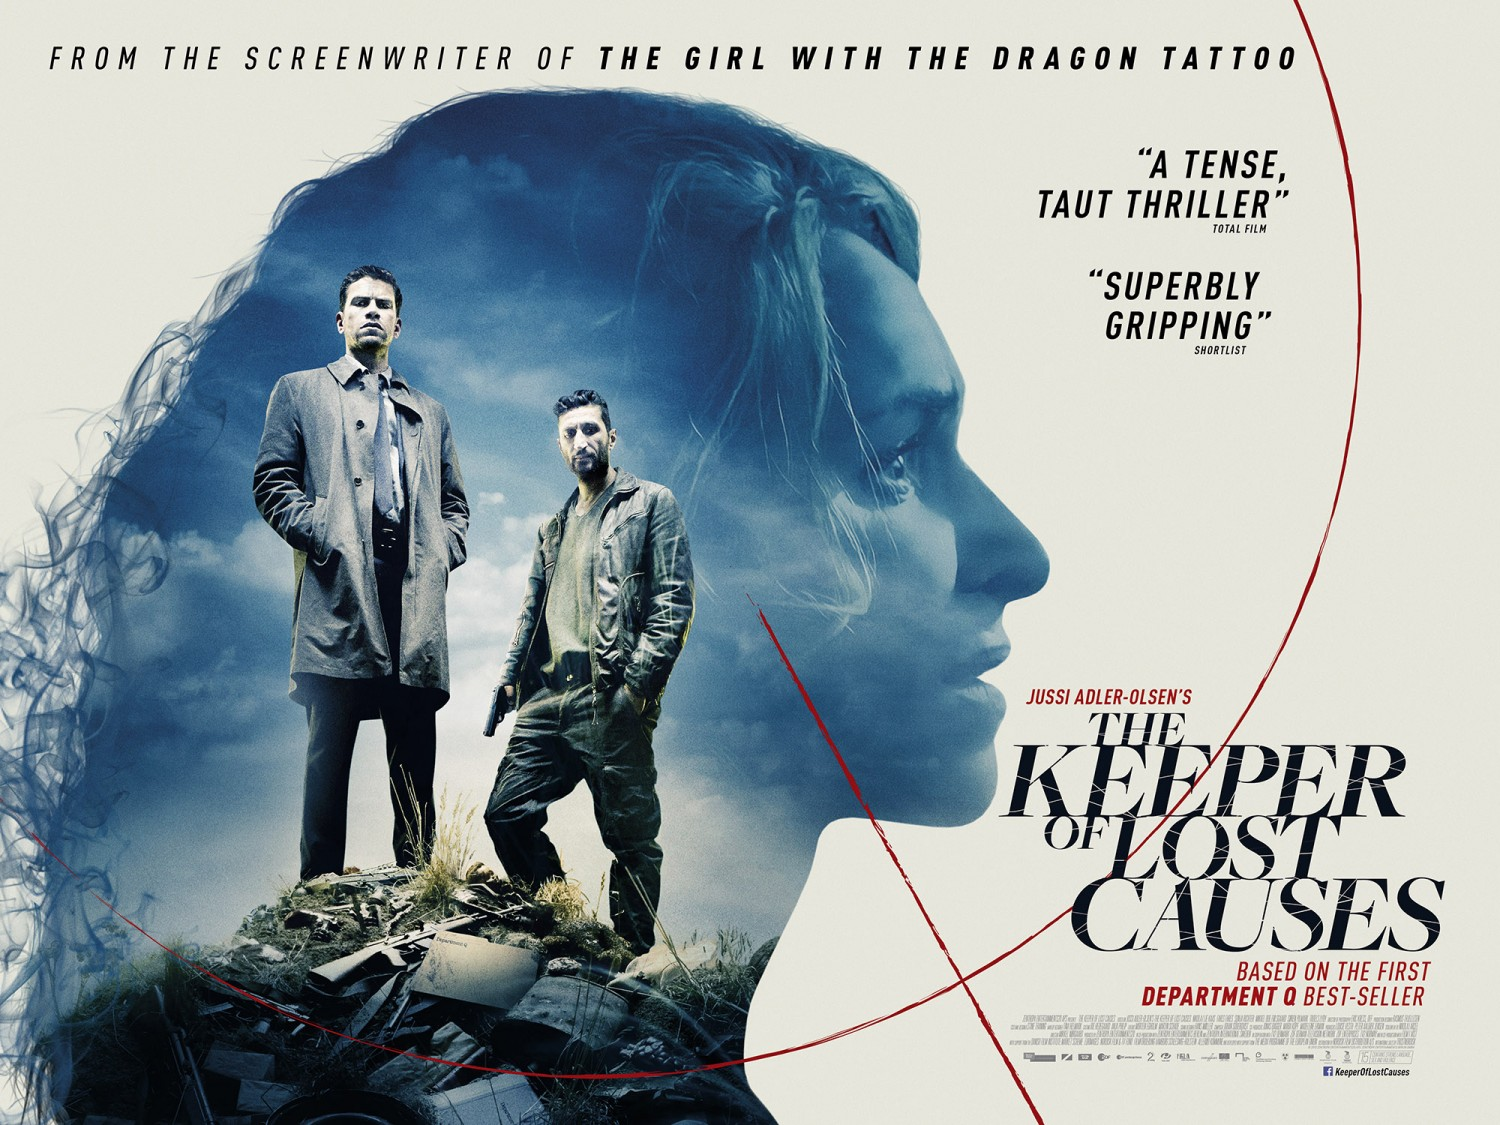 One Mann S Movies Film Review The Keeper Of Lost Causes Kvinden I Buret 2014 One Mann S Movies